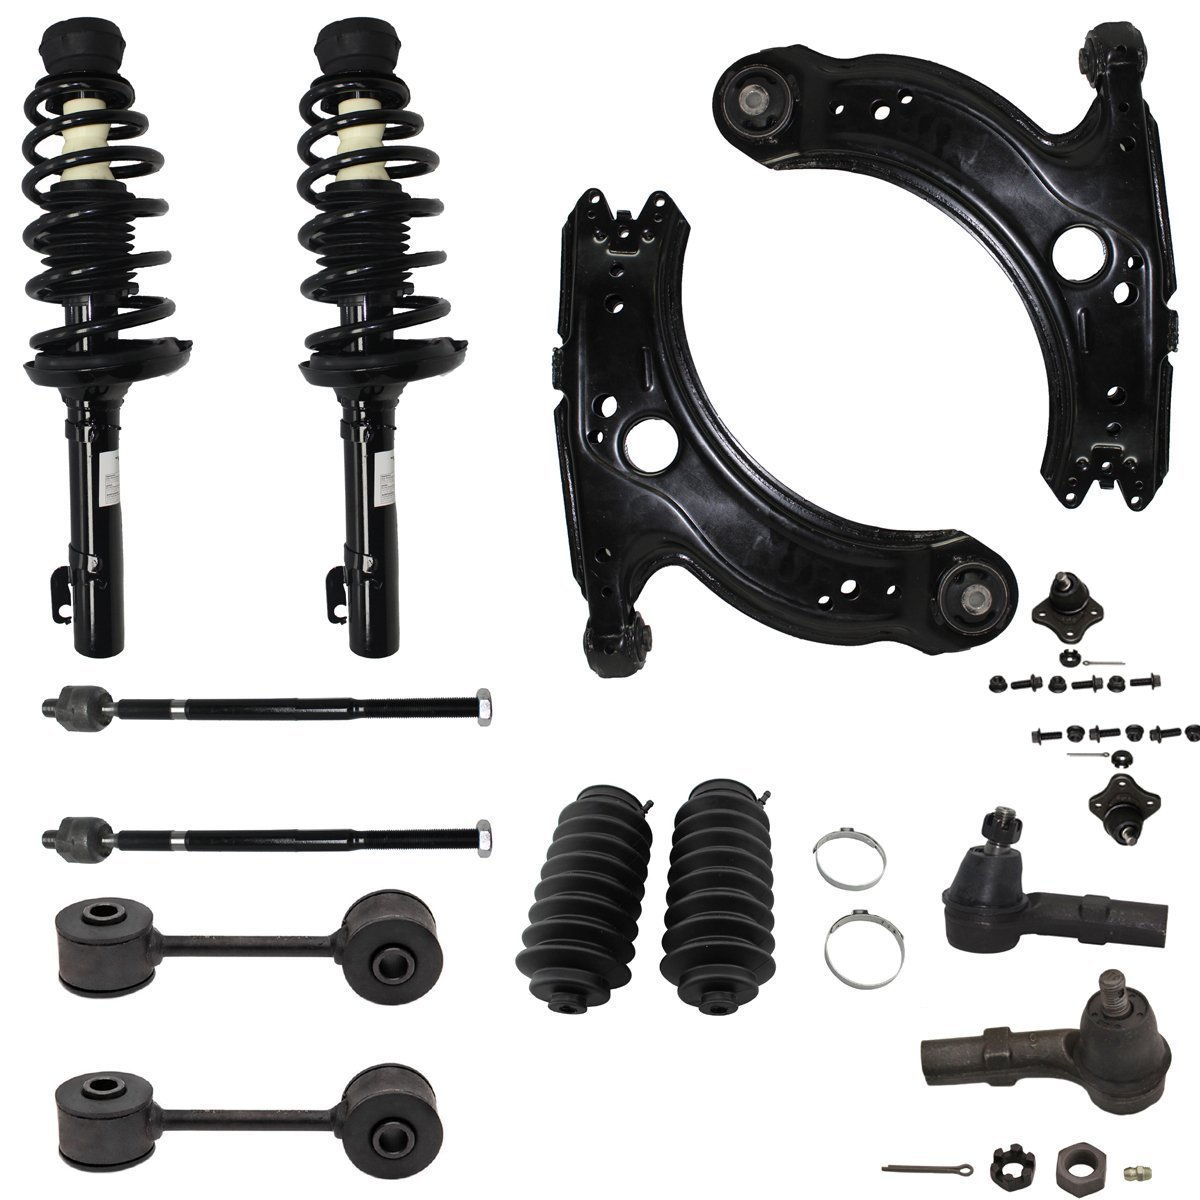 Detroit Axle - New 14pc Left & Right Complete Front Quick Strut & Coil Spring Suspension Kit Fits VW Jetta Golf